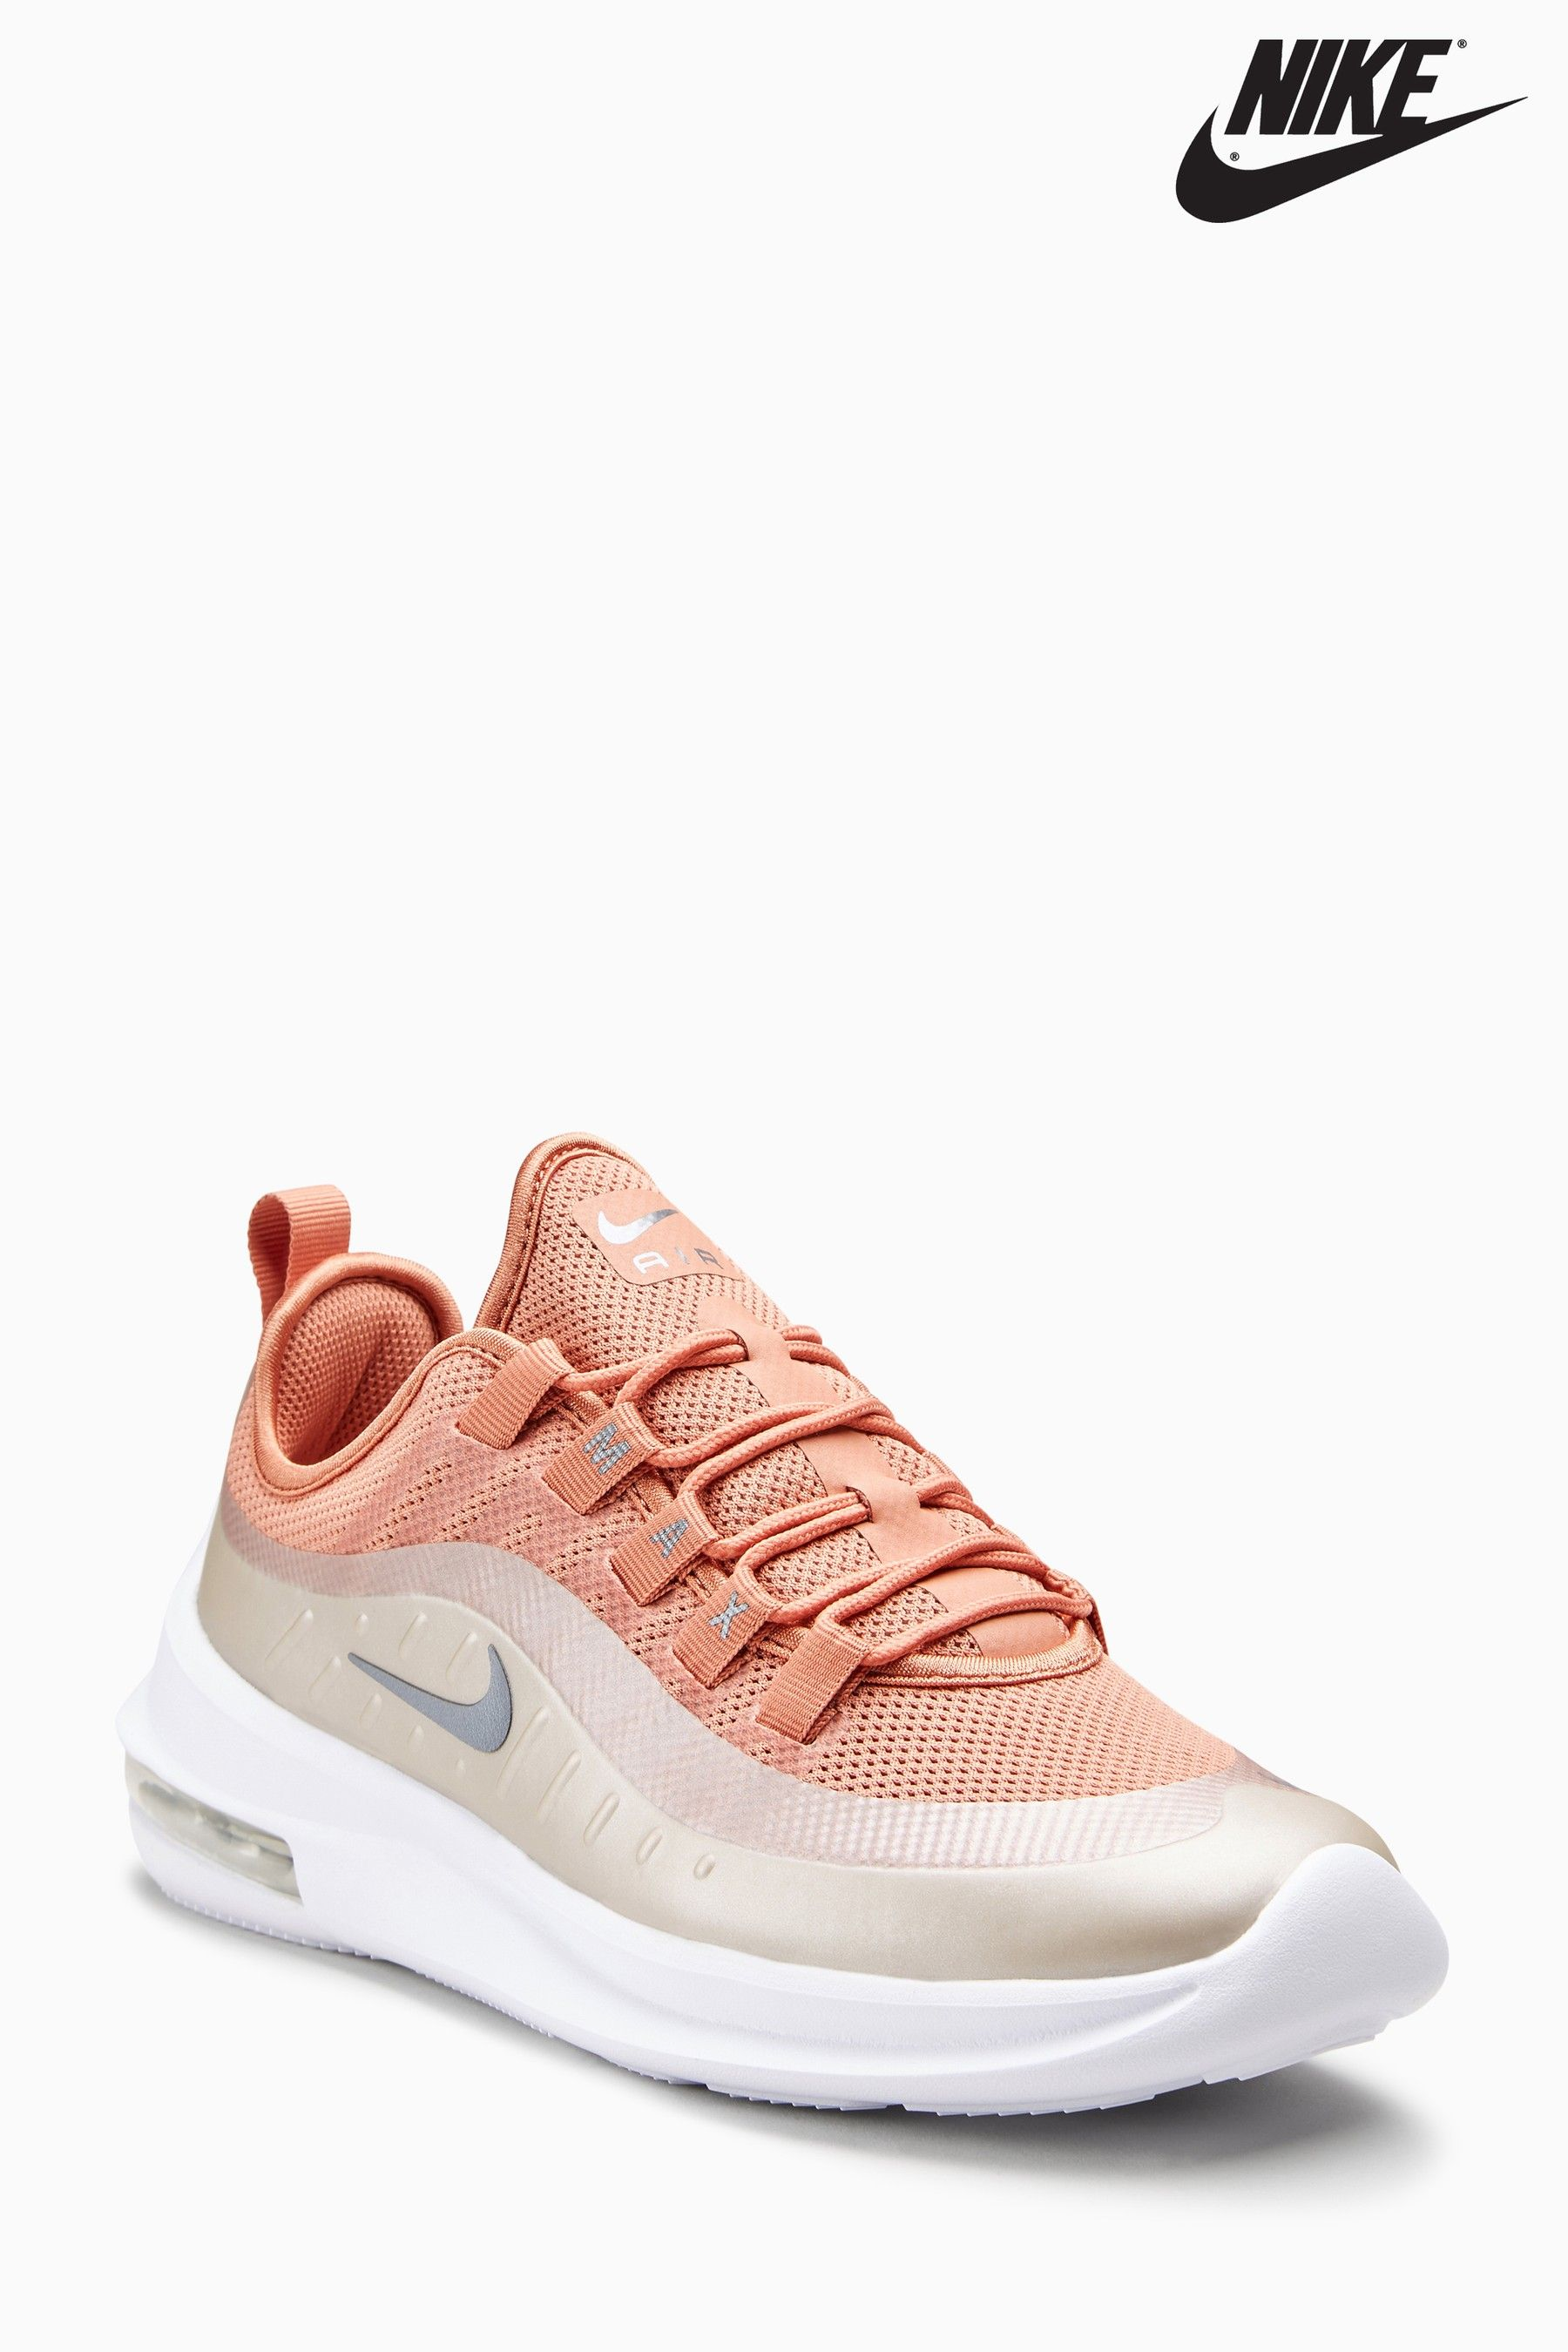 7cdf3aaf Womens Nike Air Max Axis - Pink | Products | Nike air max, Nike air ...